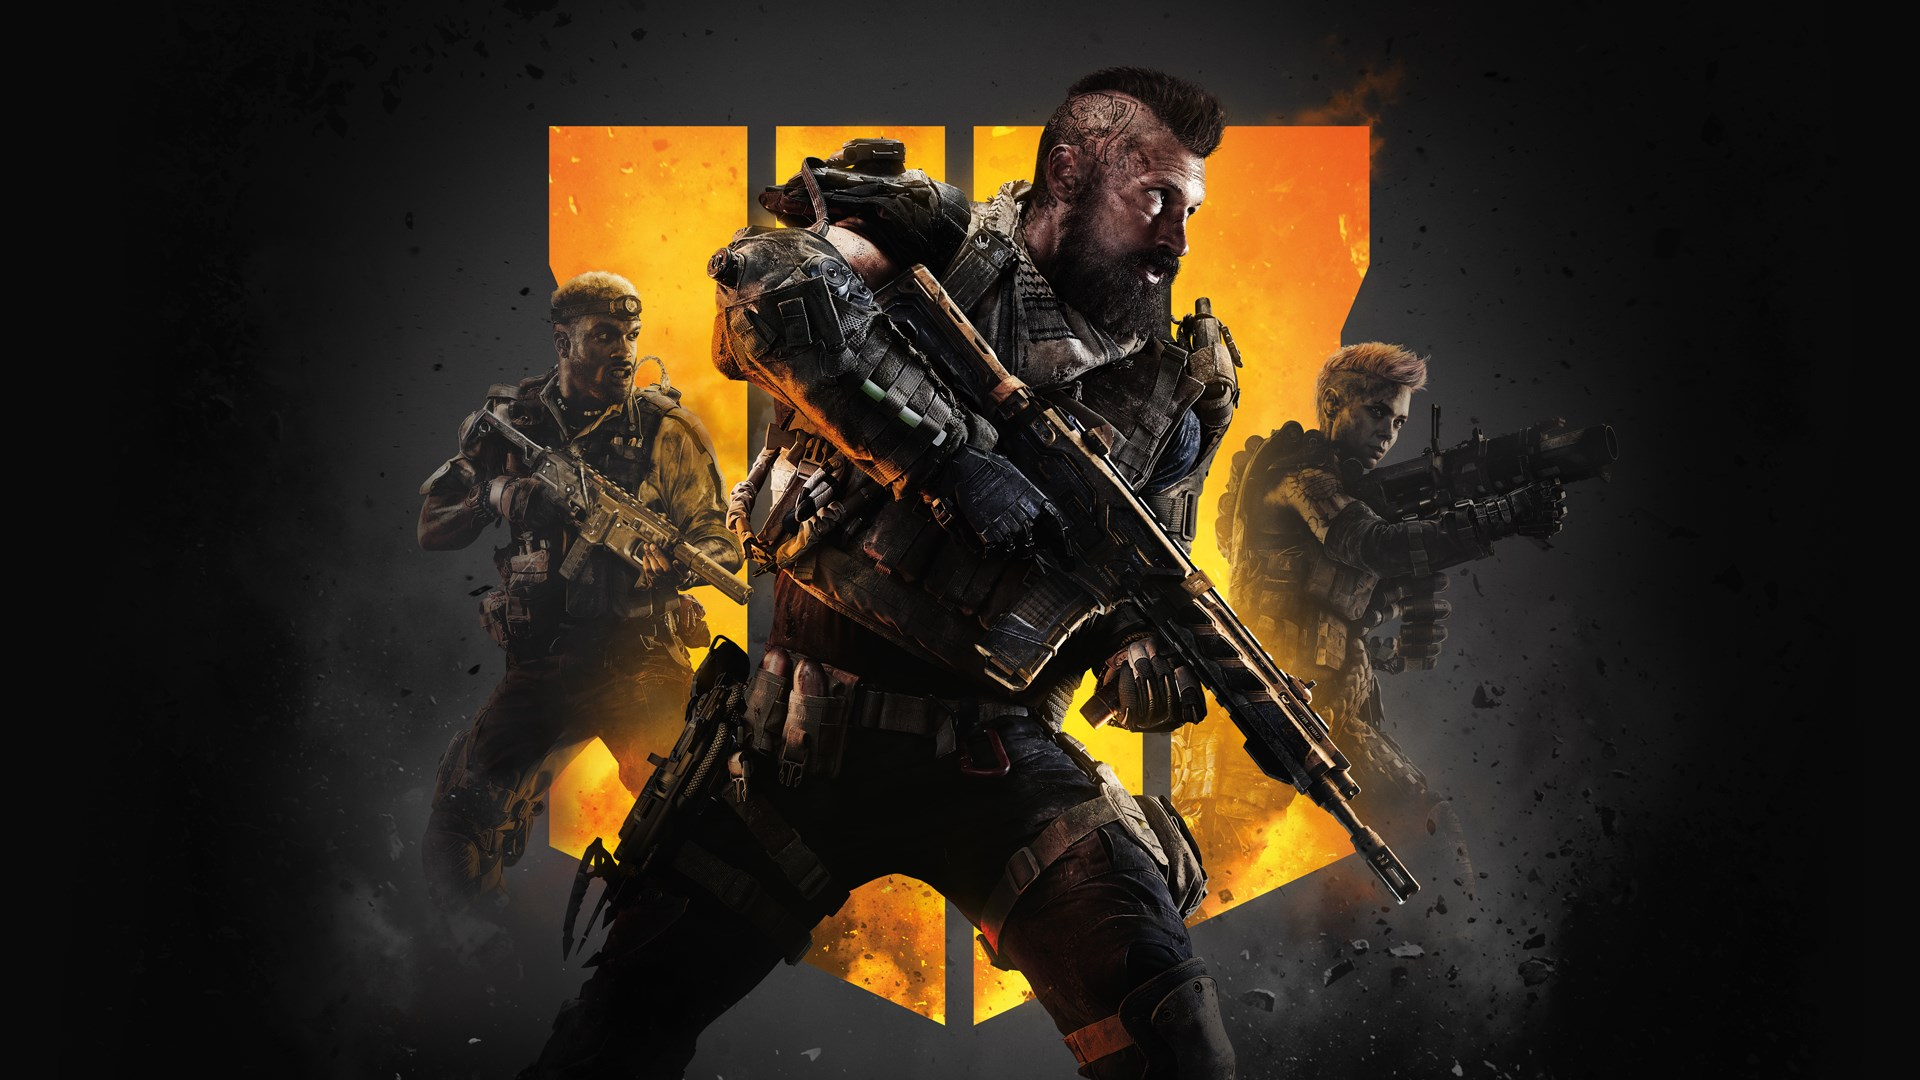 """NEWLY REVEALED """"CALL OF DUTY BLACK OPS 4' IS A FREE PC GAME"""